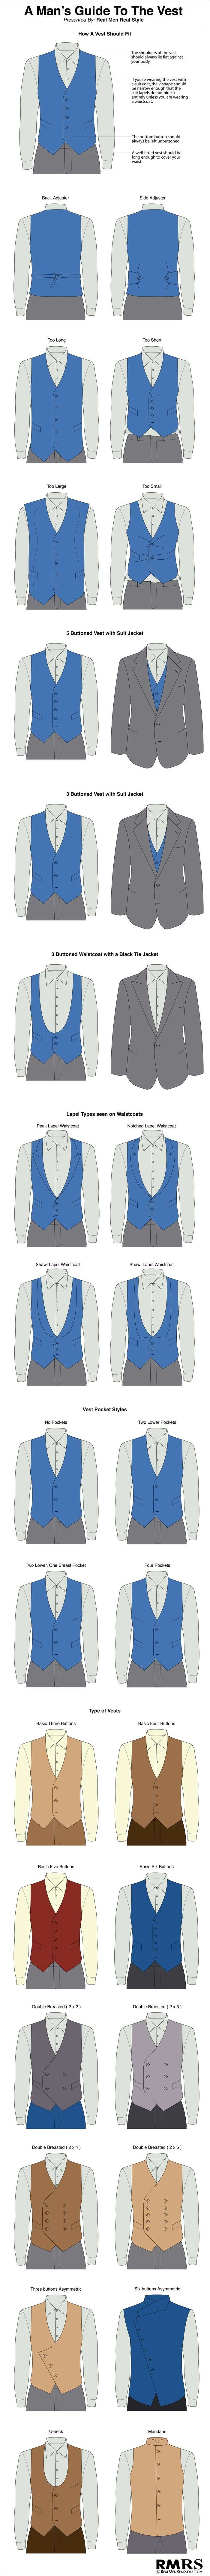 A Mans Guide To The Vest | The Idle Man | #StyleMadeEasy